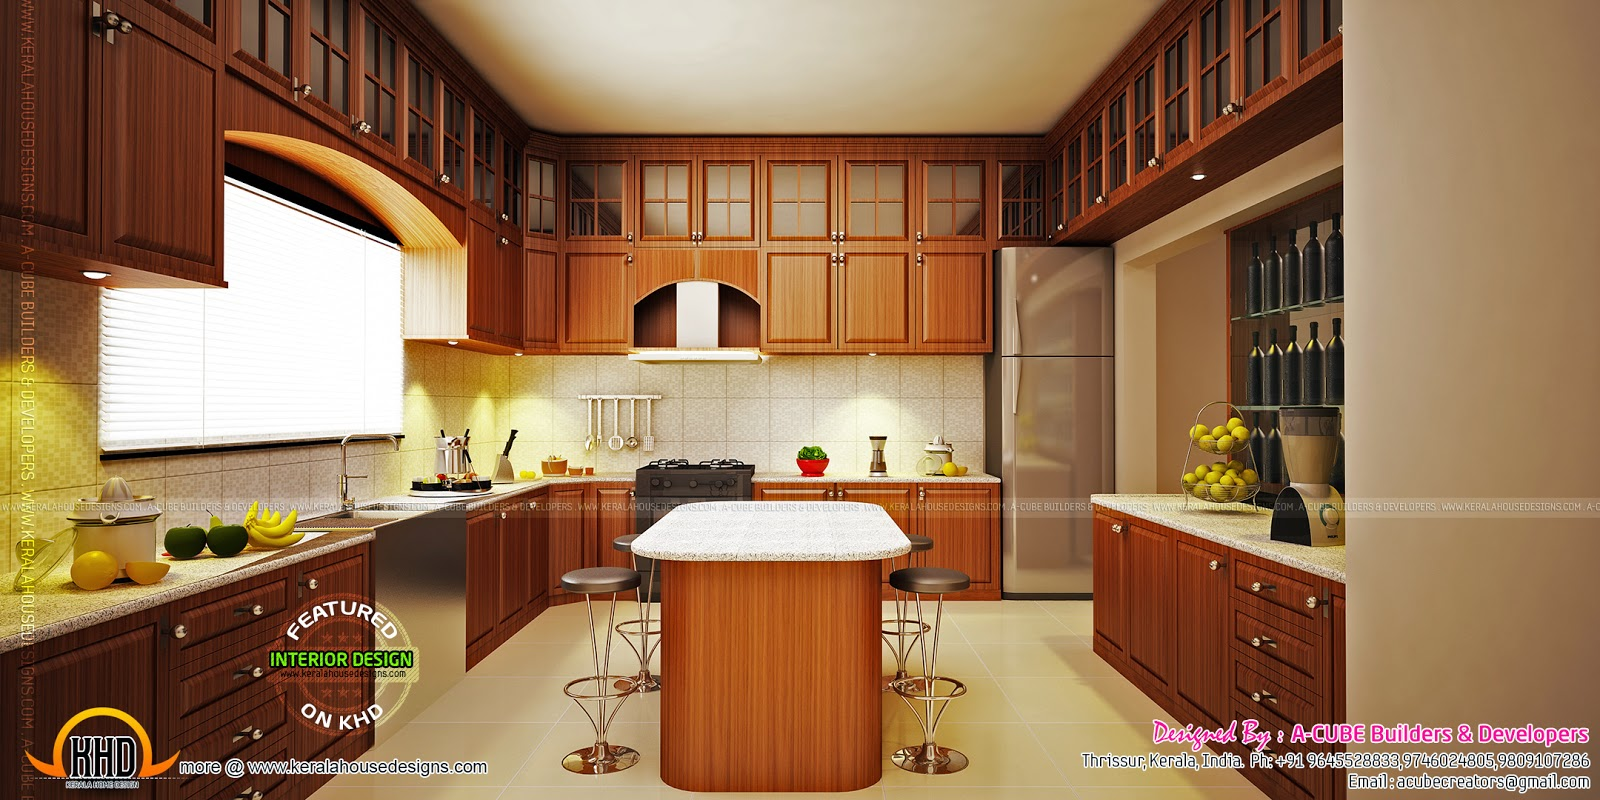 Finest modern kerala interior designs kerala home design and floor plans  with new kitchen designs in keralaNew Kitchen Designs In Kerala  Interior Designers And Modular  . Latest Kitchen Designs In Kerala. Home Design Ideas